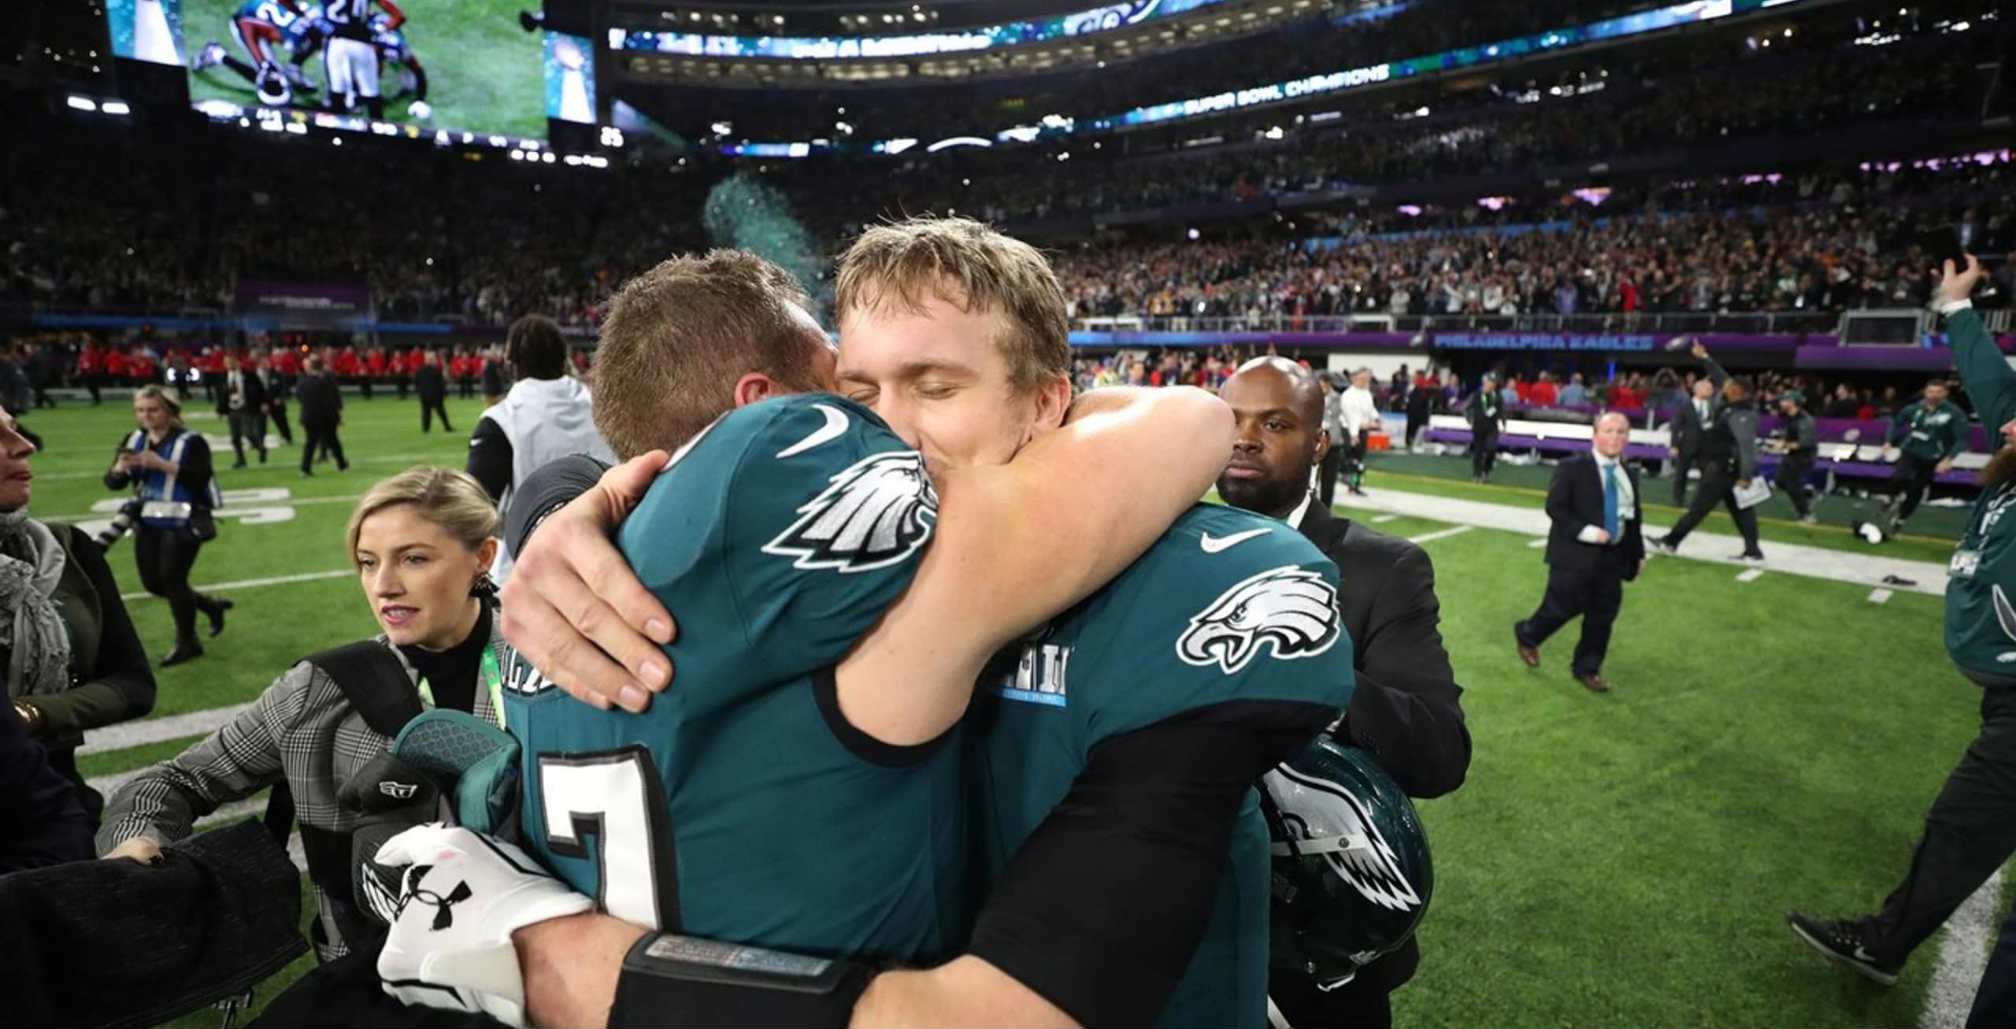 Philadelphia Eagles players after Super Bowl victory